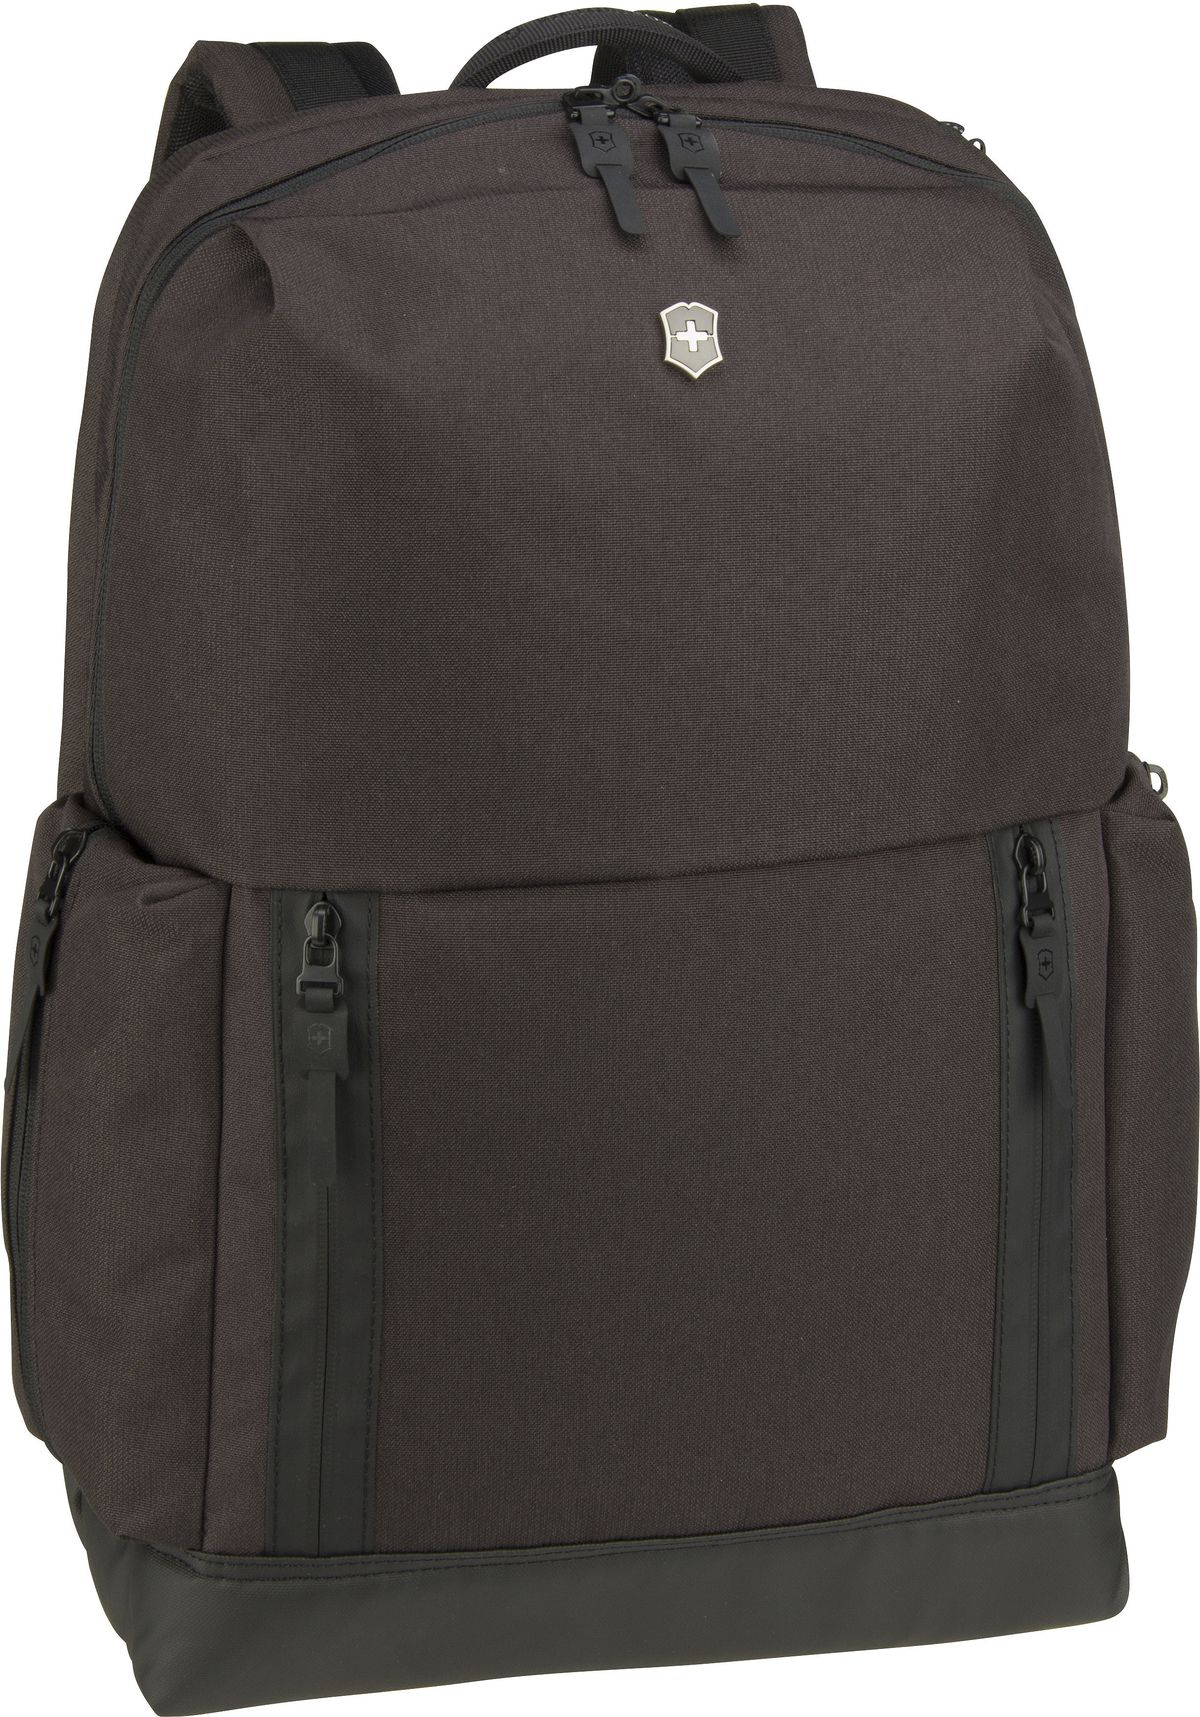 Laptoprucksack Altmont Classic Deluxe Laptop Backpack Black (20 Liter)